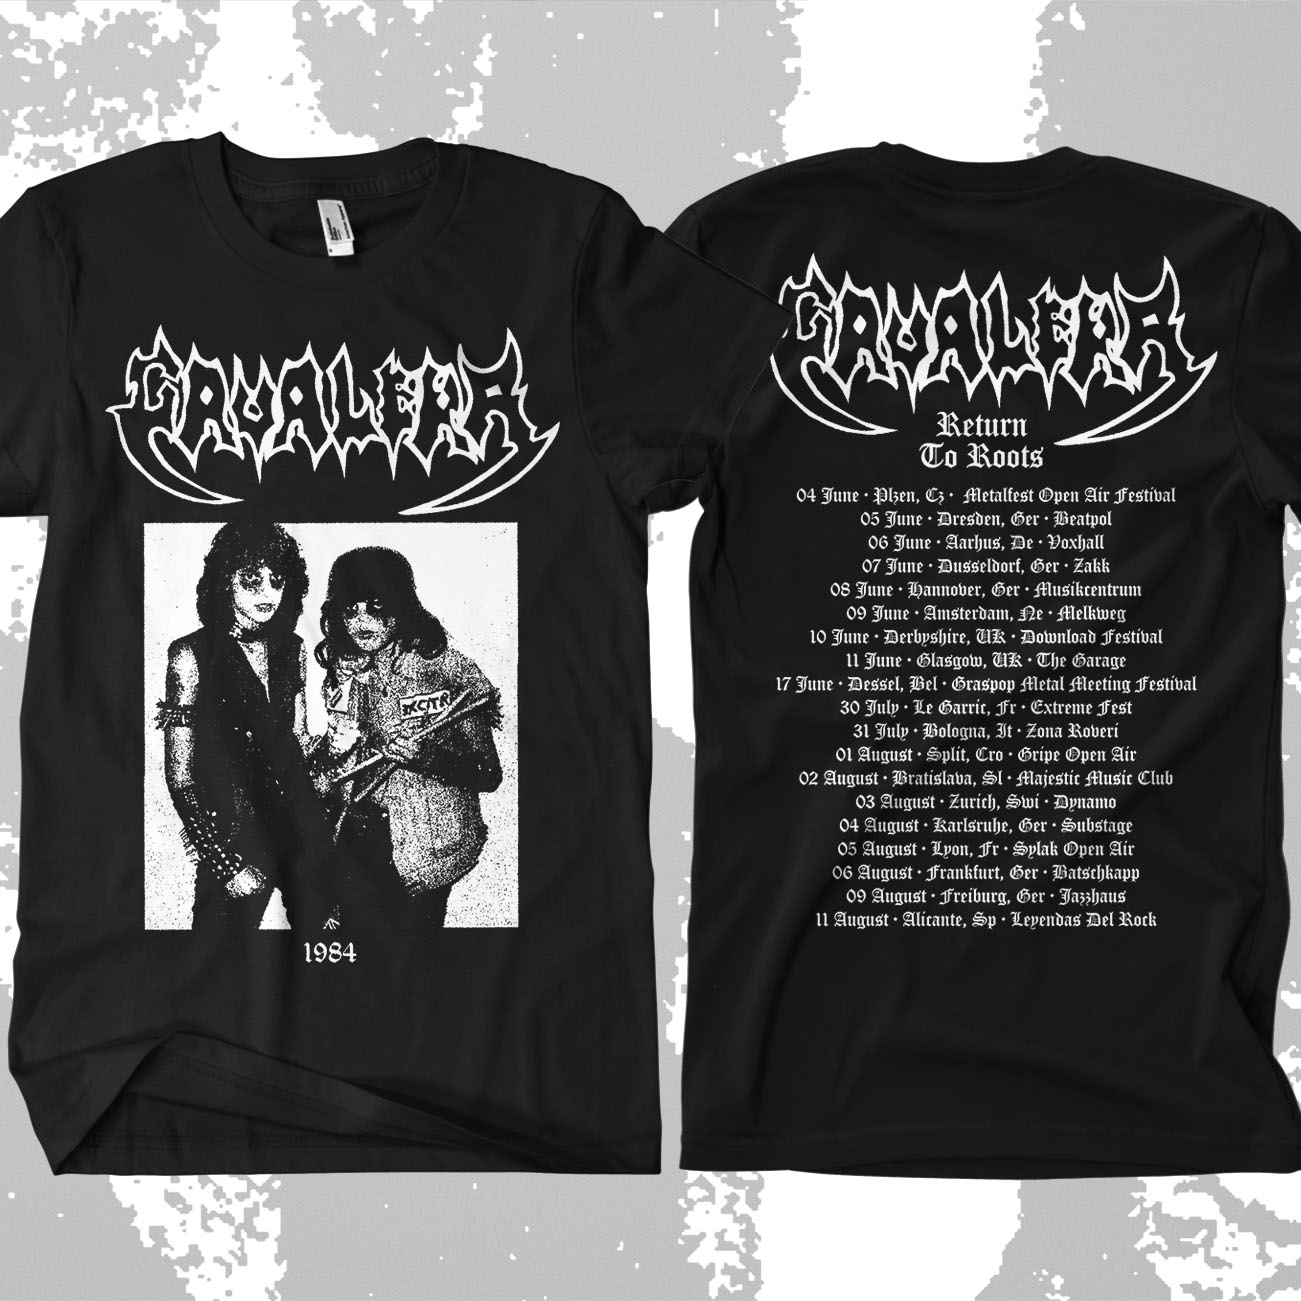 Cavalera - 'Return to Roots' Tour T-Shirt - Soulfly